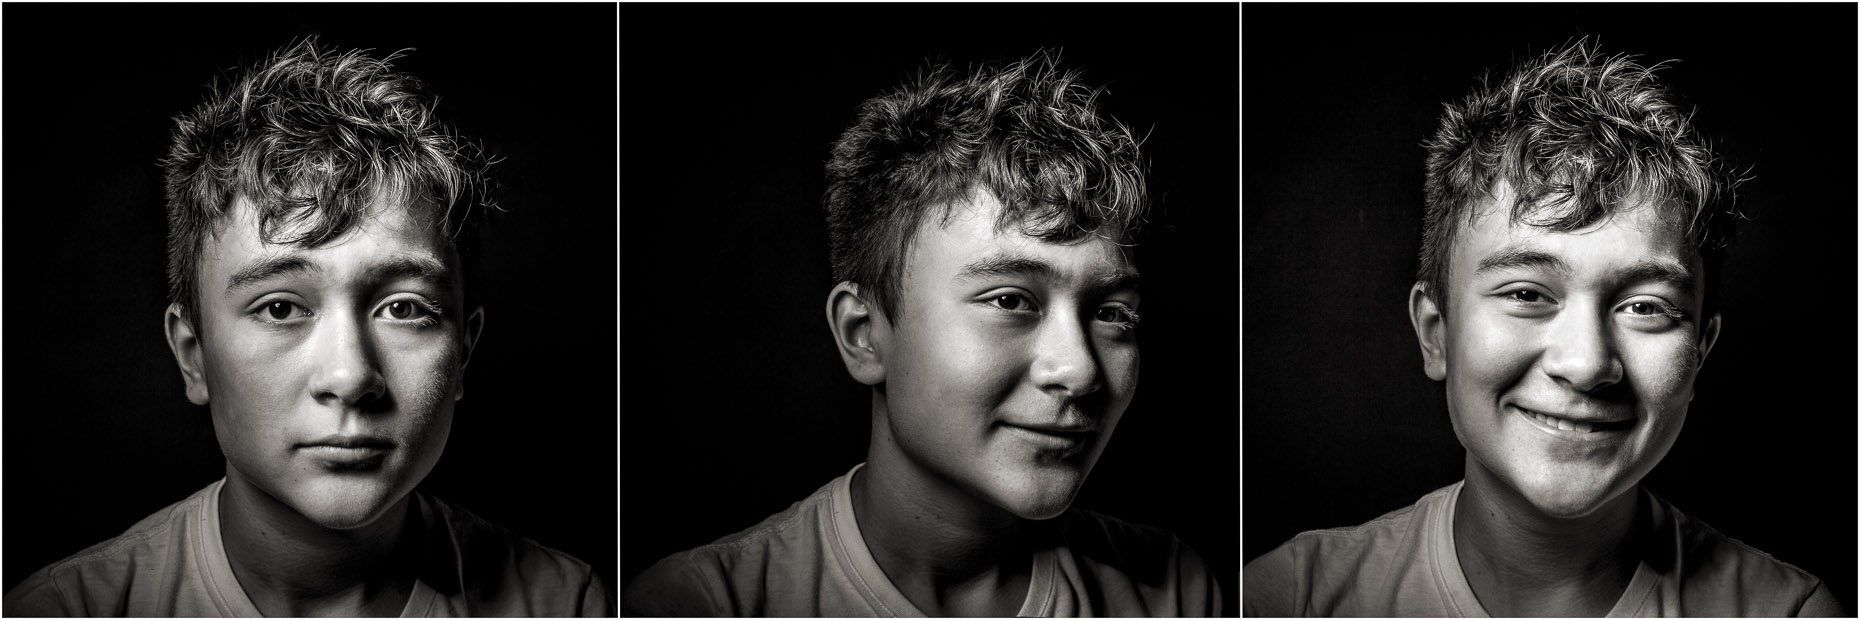 Julian | Waldorf School of Philadelphia Portrait